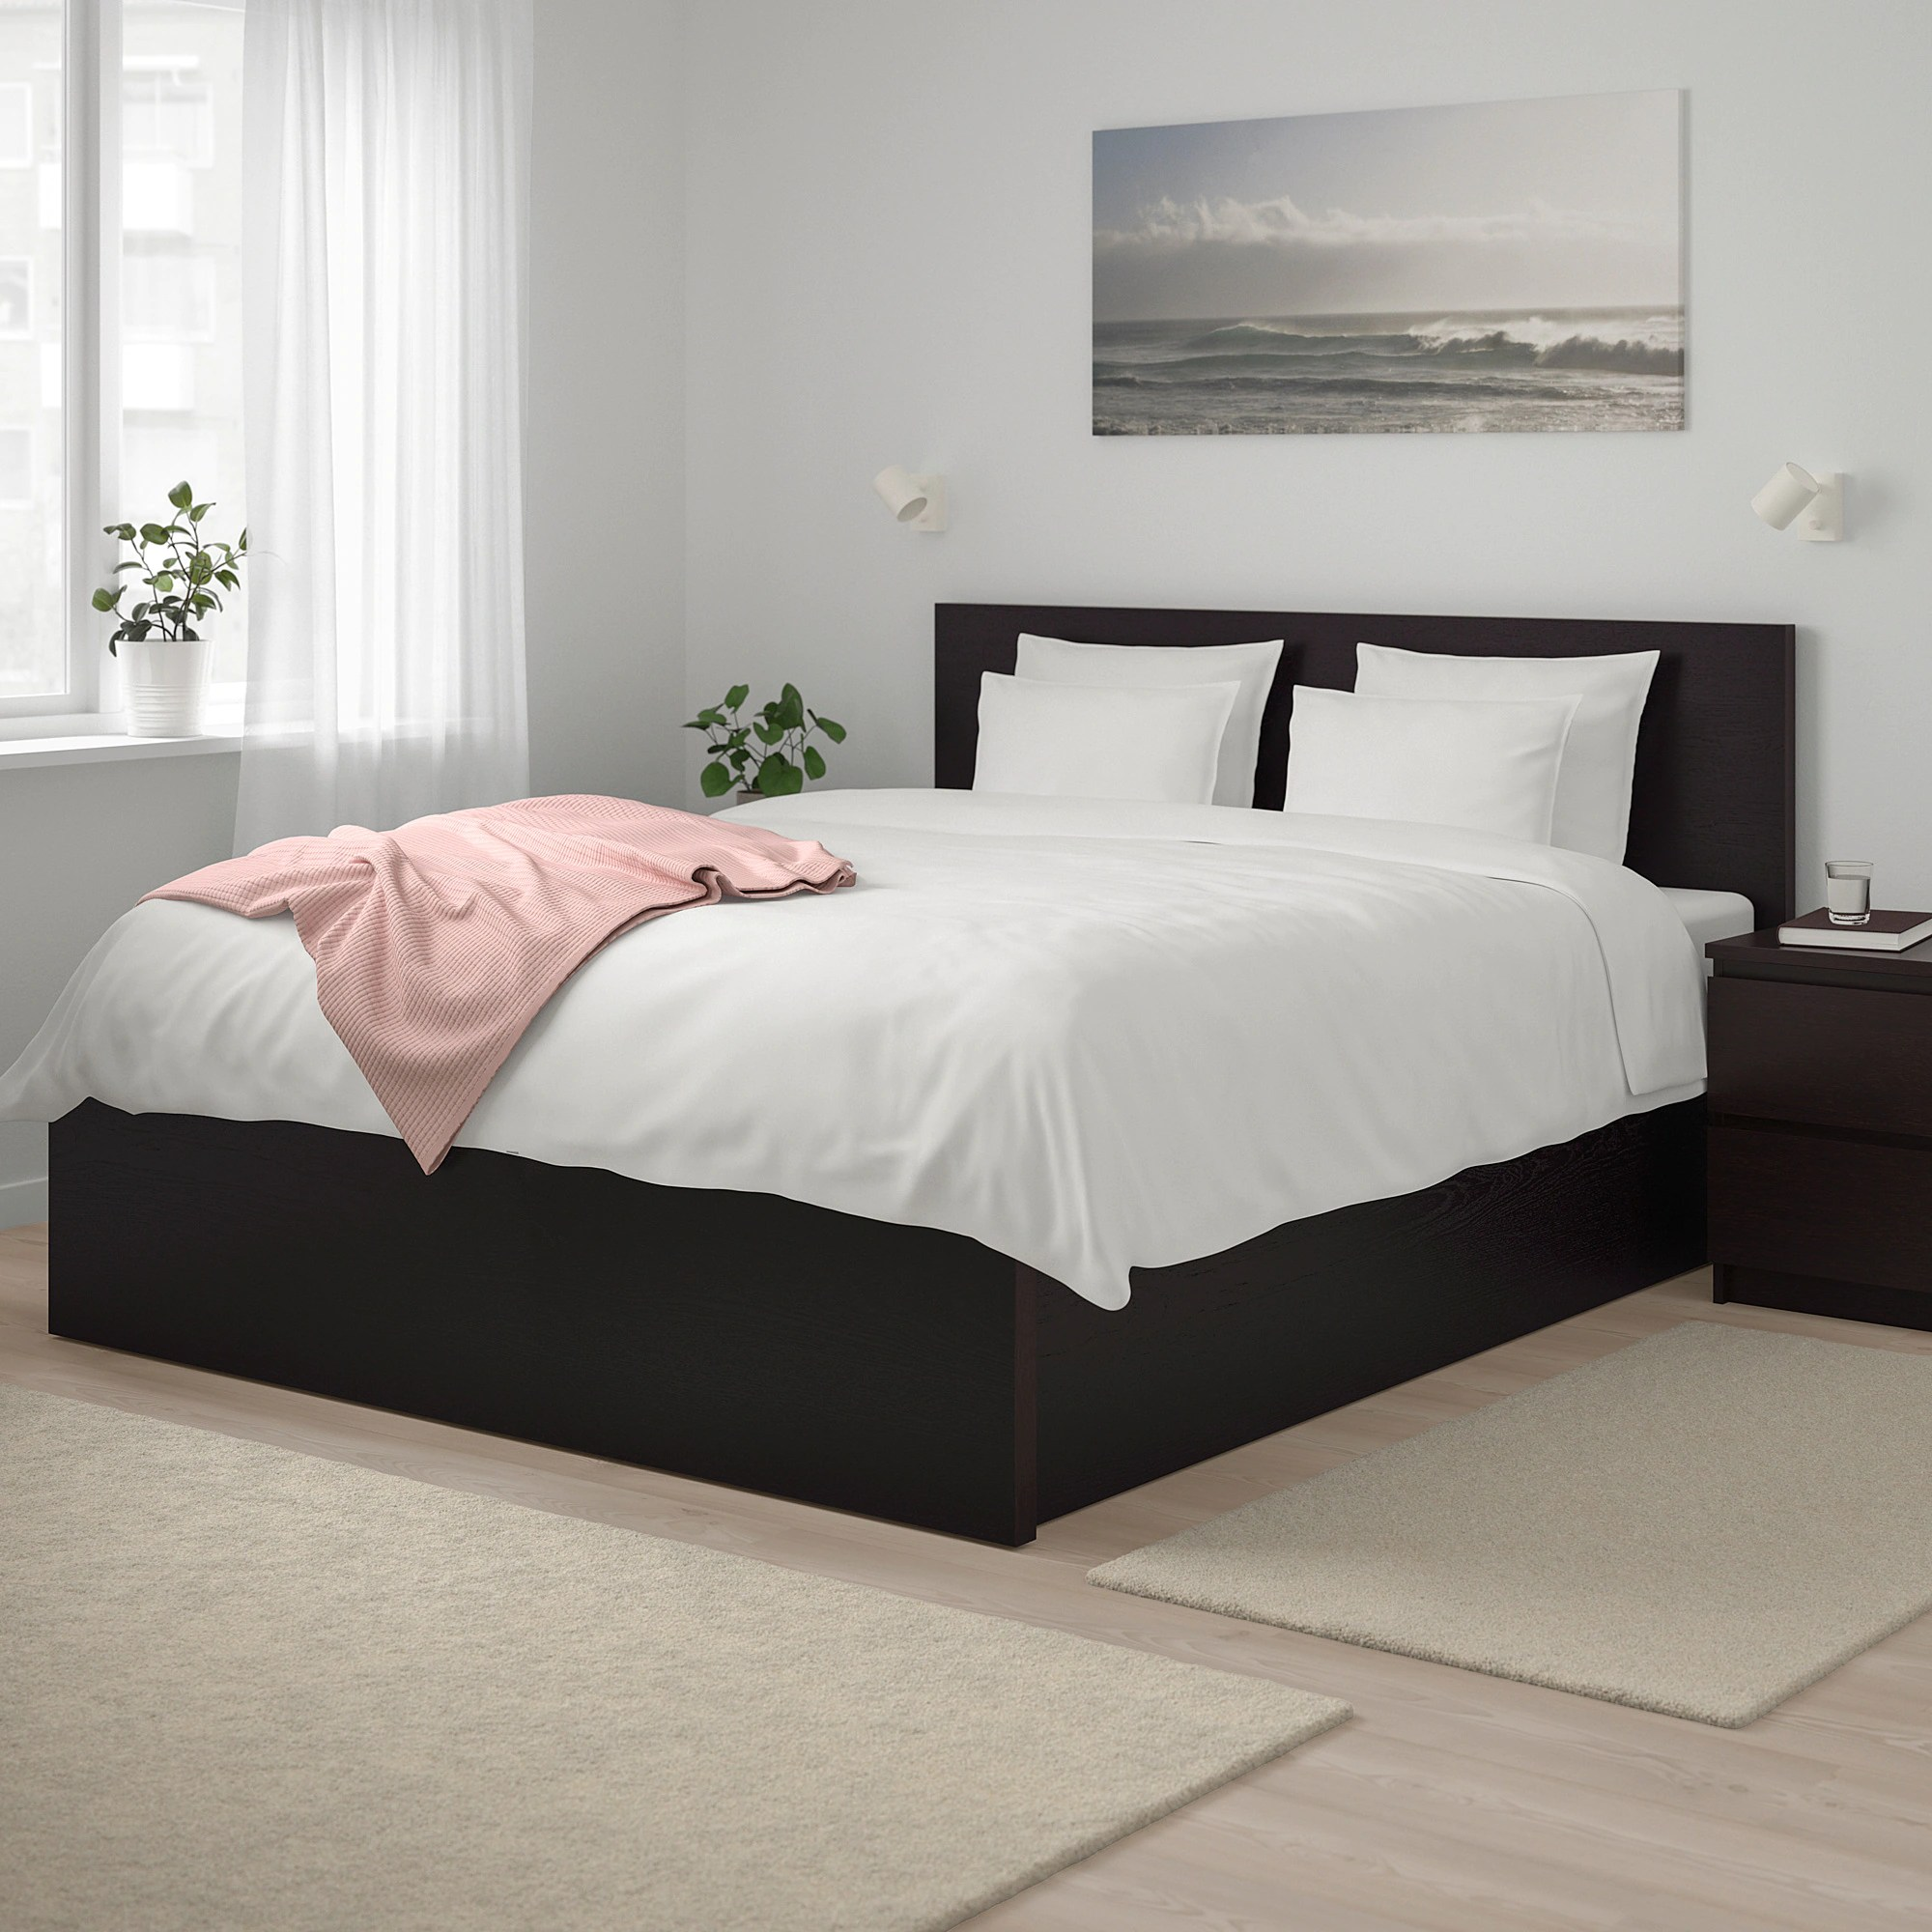 Lifting Beds Malm Storage Bed Black Brown